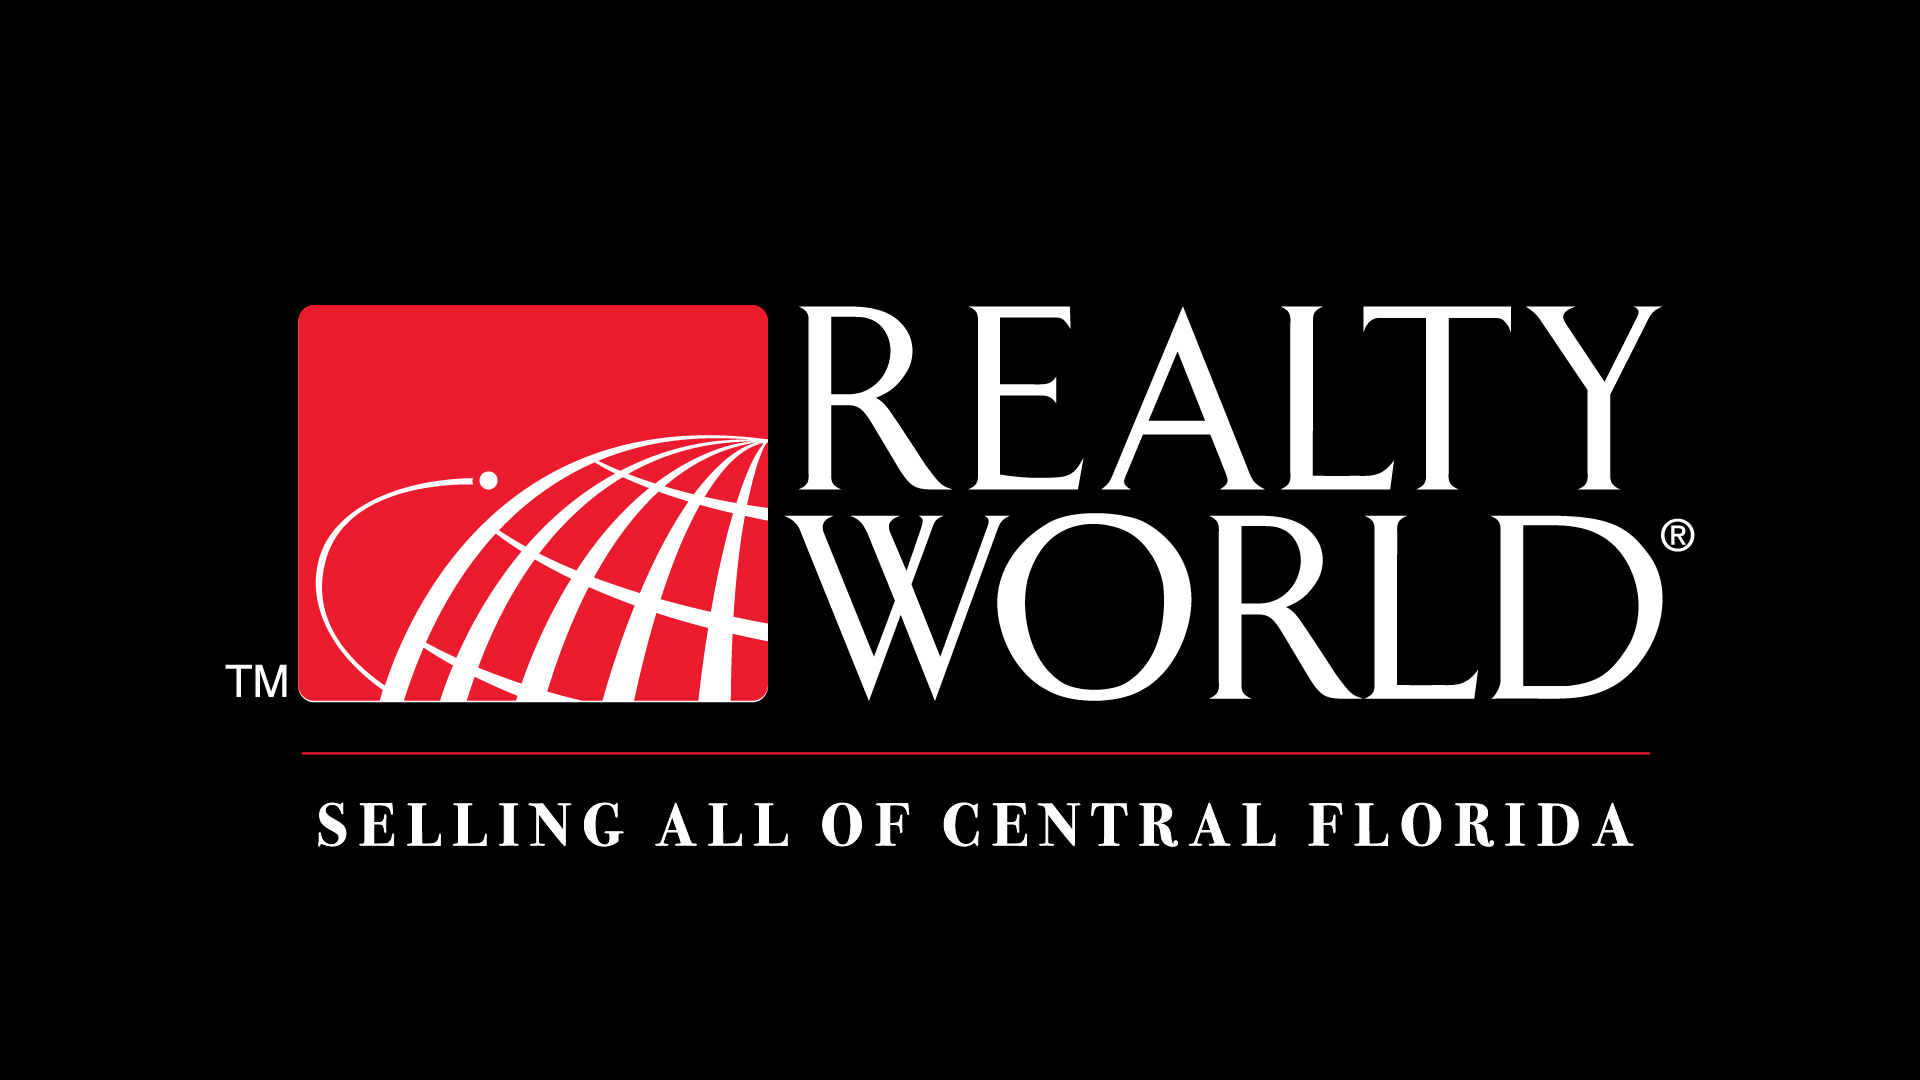 Ocala Realty World - Selling All of Florida